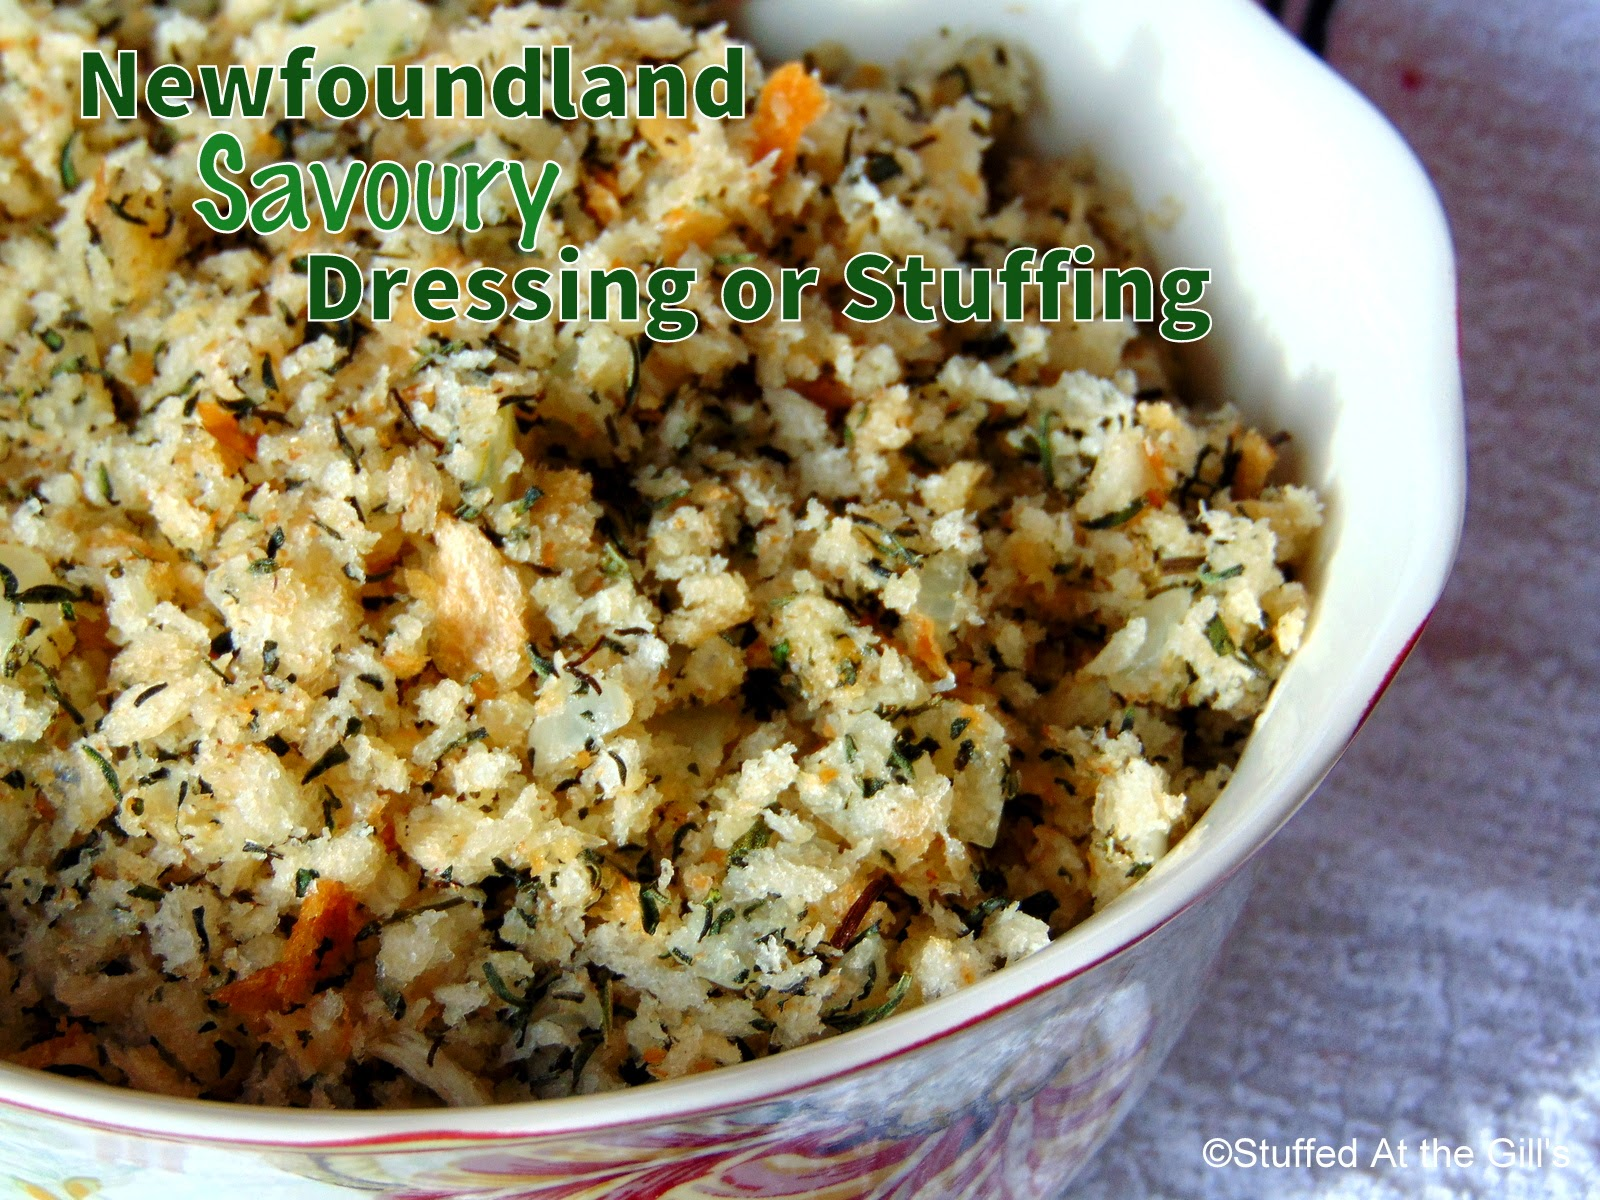 Newfoundland Savoury Dressing or Stuffing